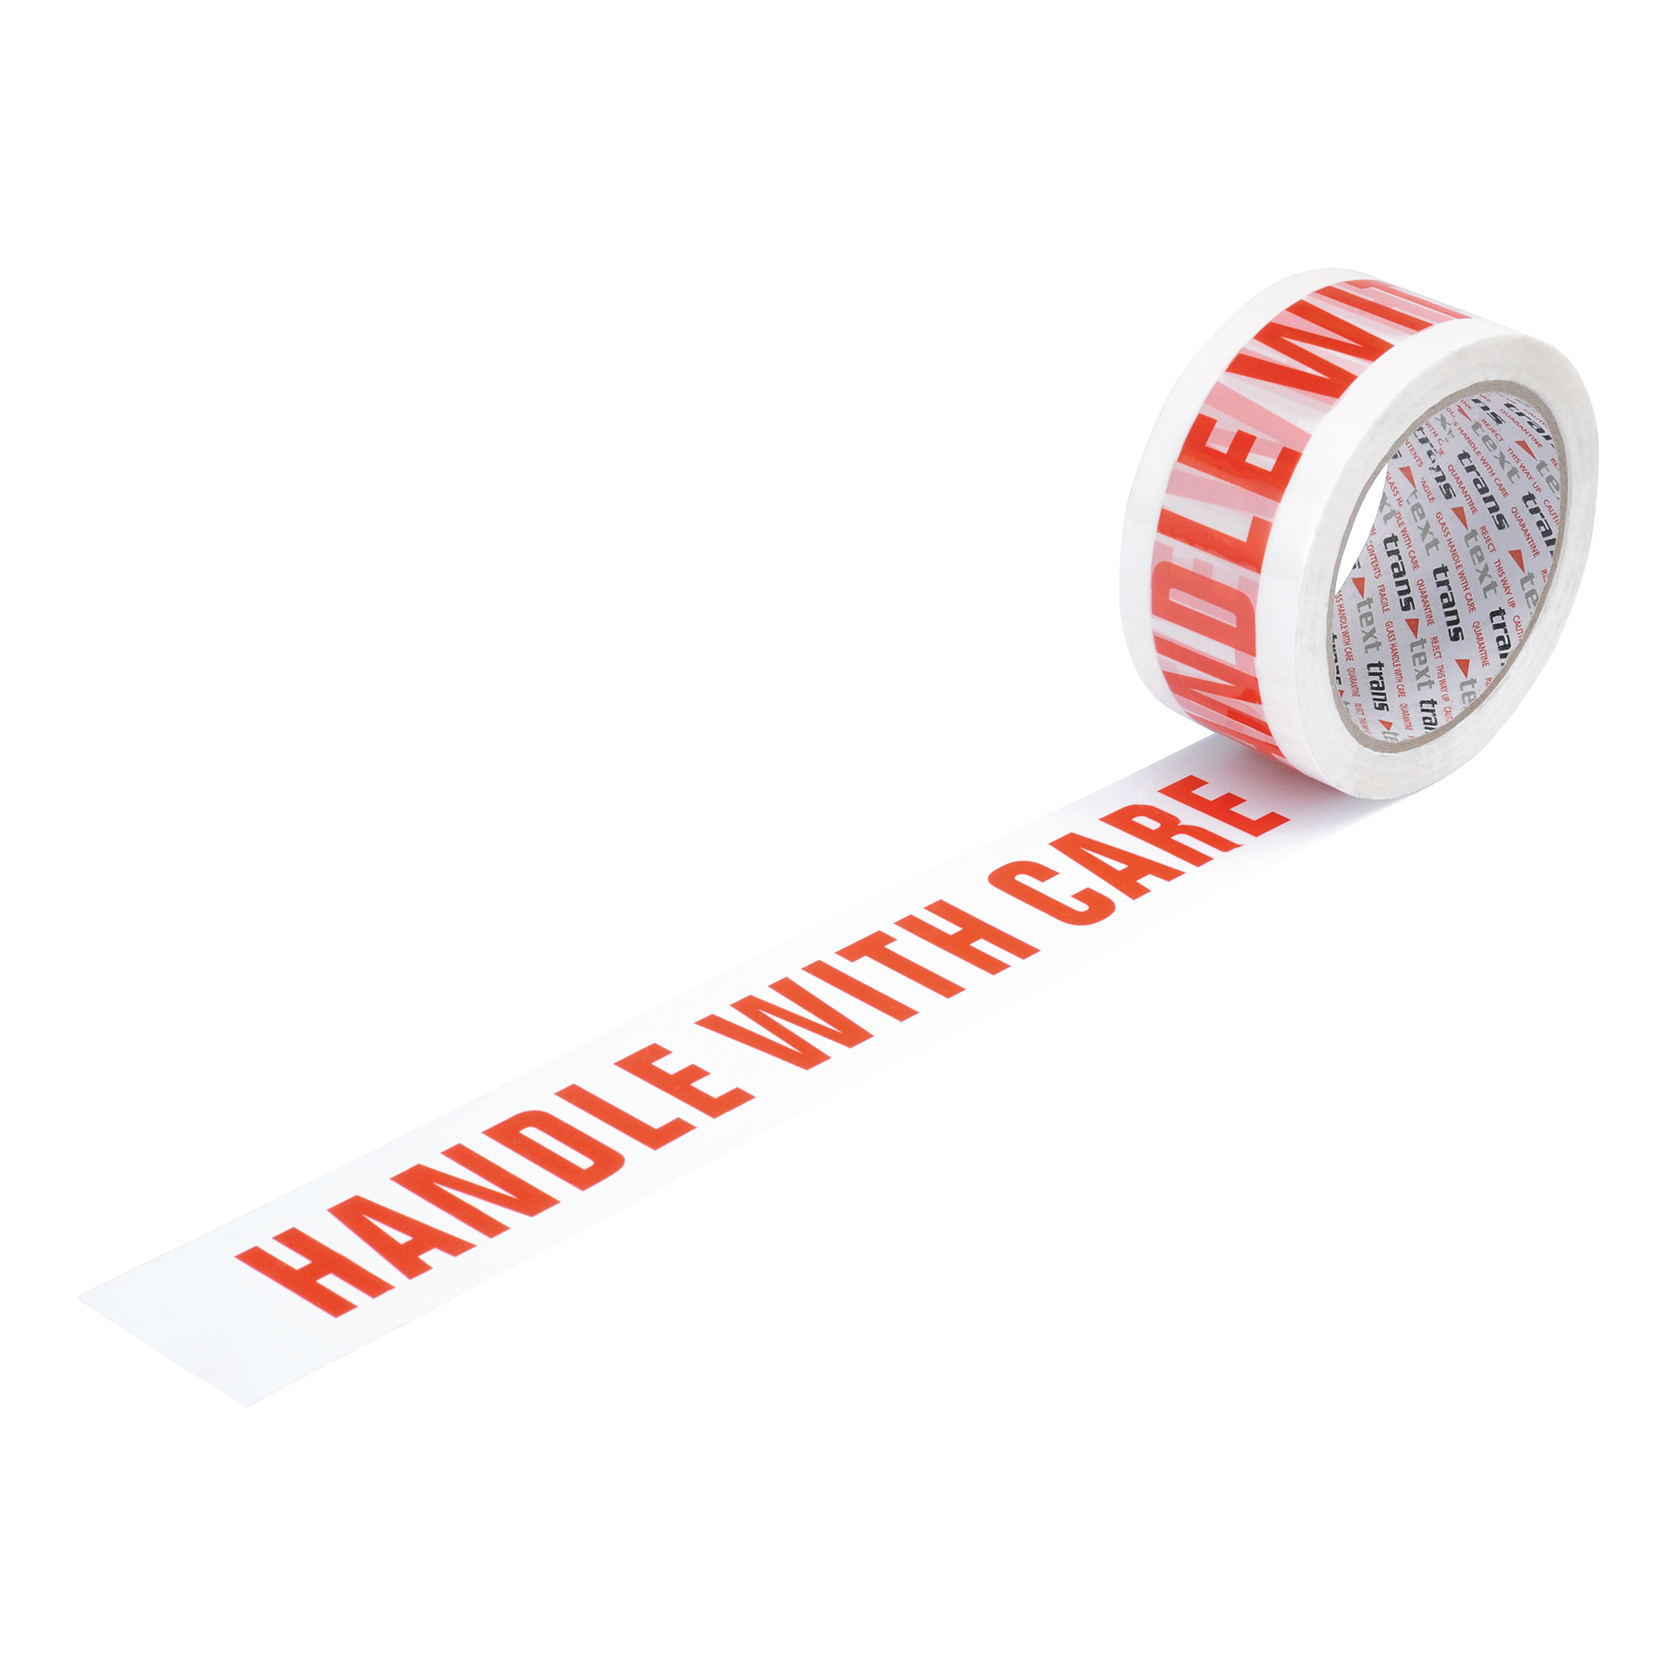 Business Printed Tape Handle with Care Polypropylene 50mm x 66m Red on White [Pack 6]